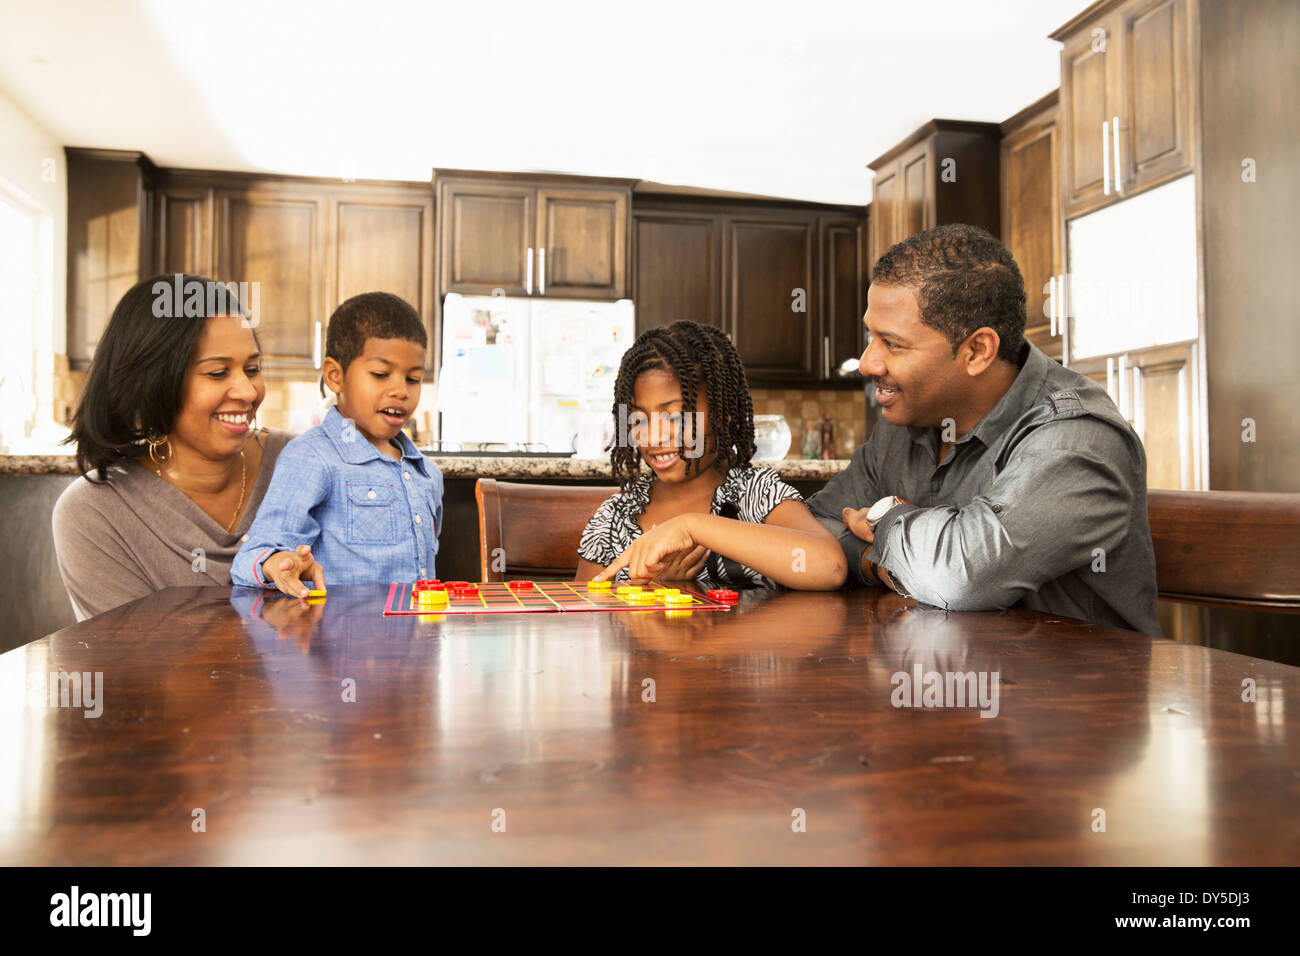 Mid adult couple and children playing draughts at table - Stock Image